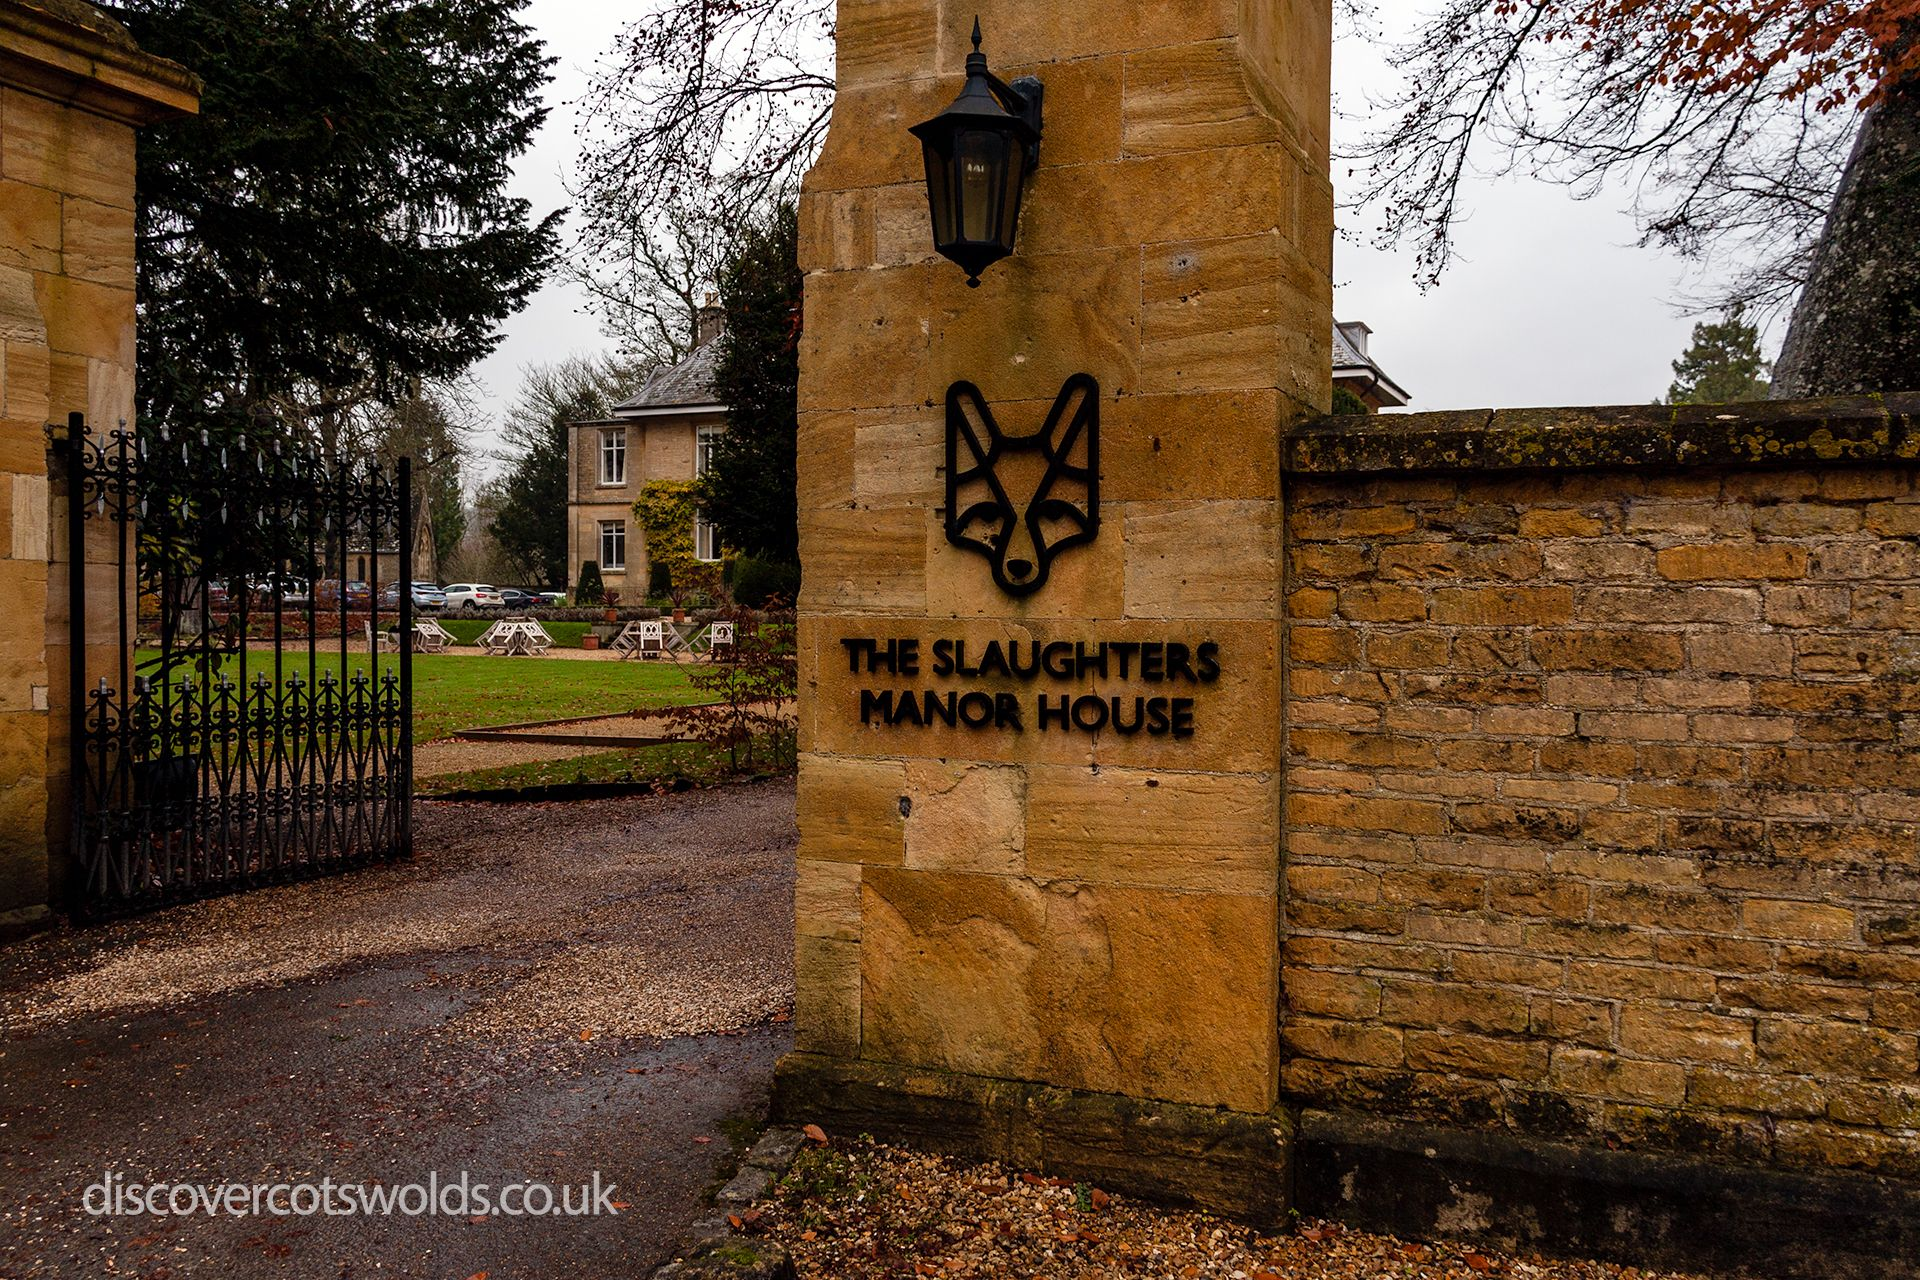 Entrance to the Slaughters Manor House